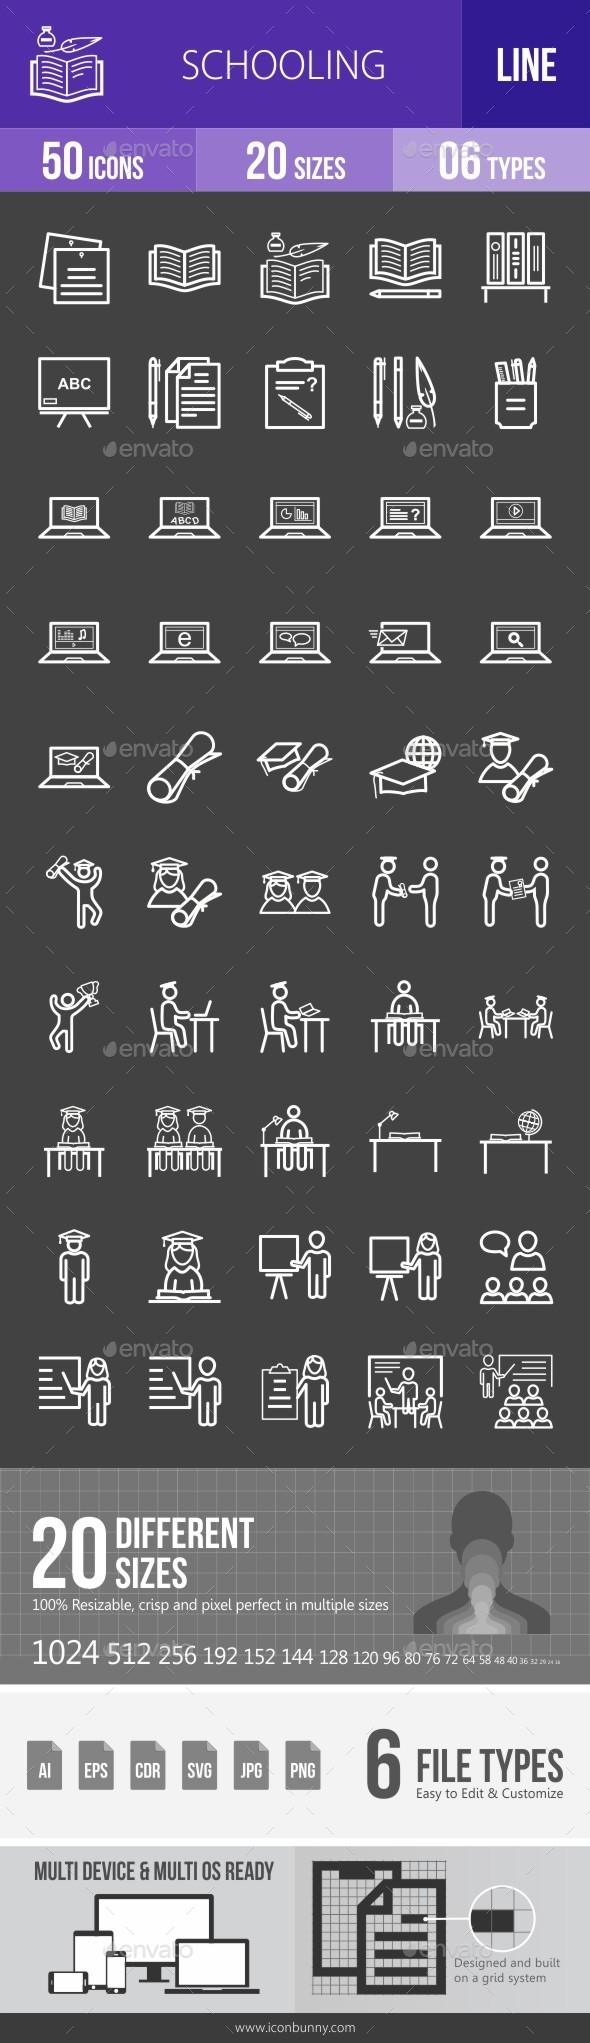 Schooling Line Inverted Icons - Icons